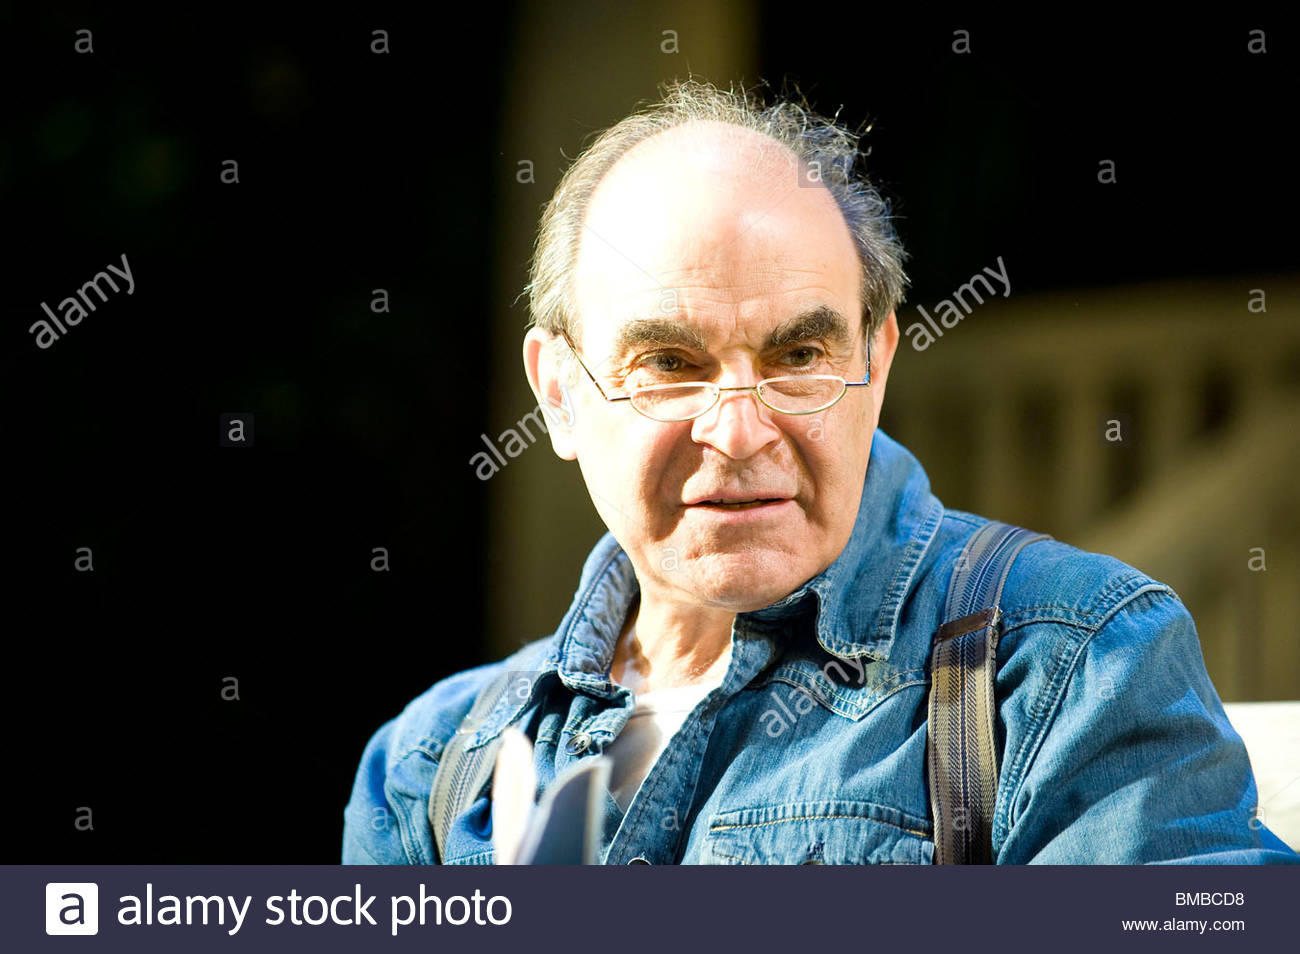 All My Sons by Arthur Miller,directed by Howard Davies.With ,David Suchet as Joe Keller - Stock Image